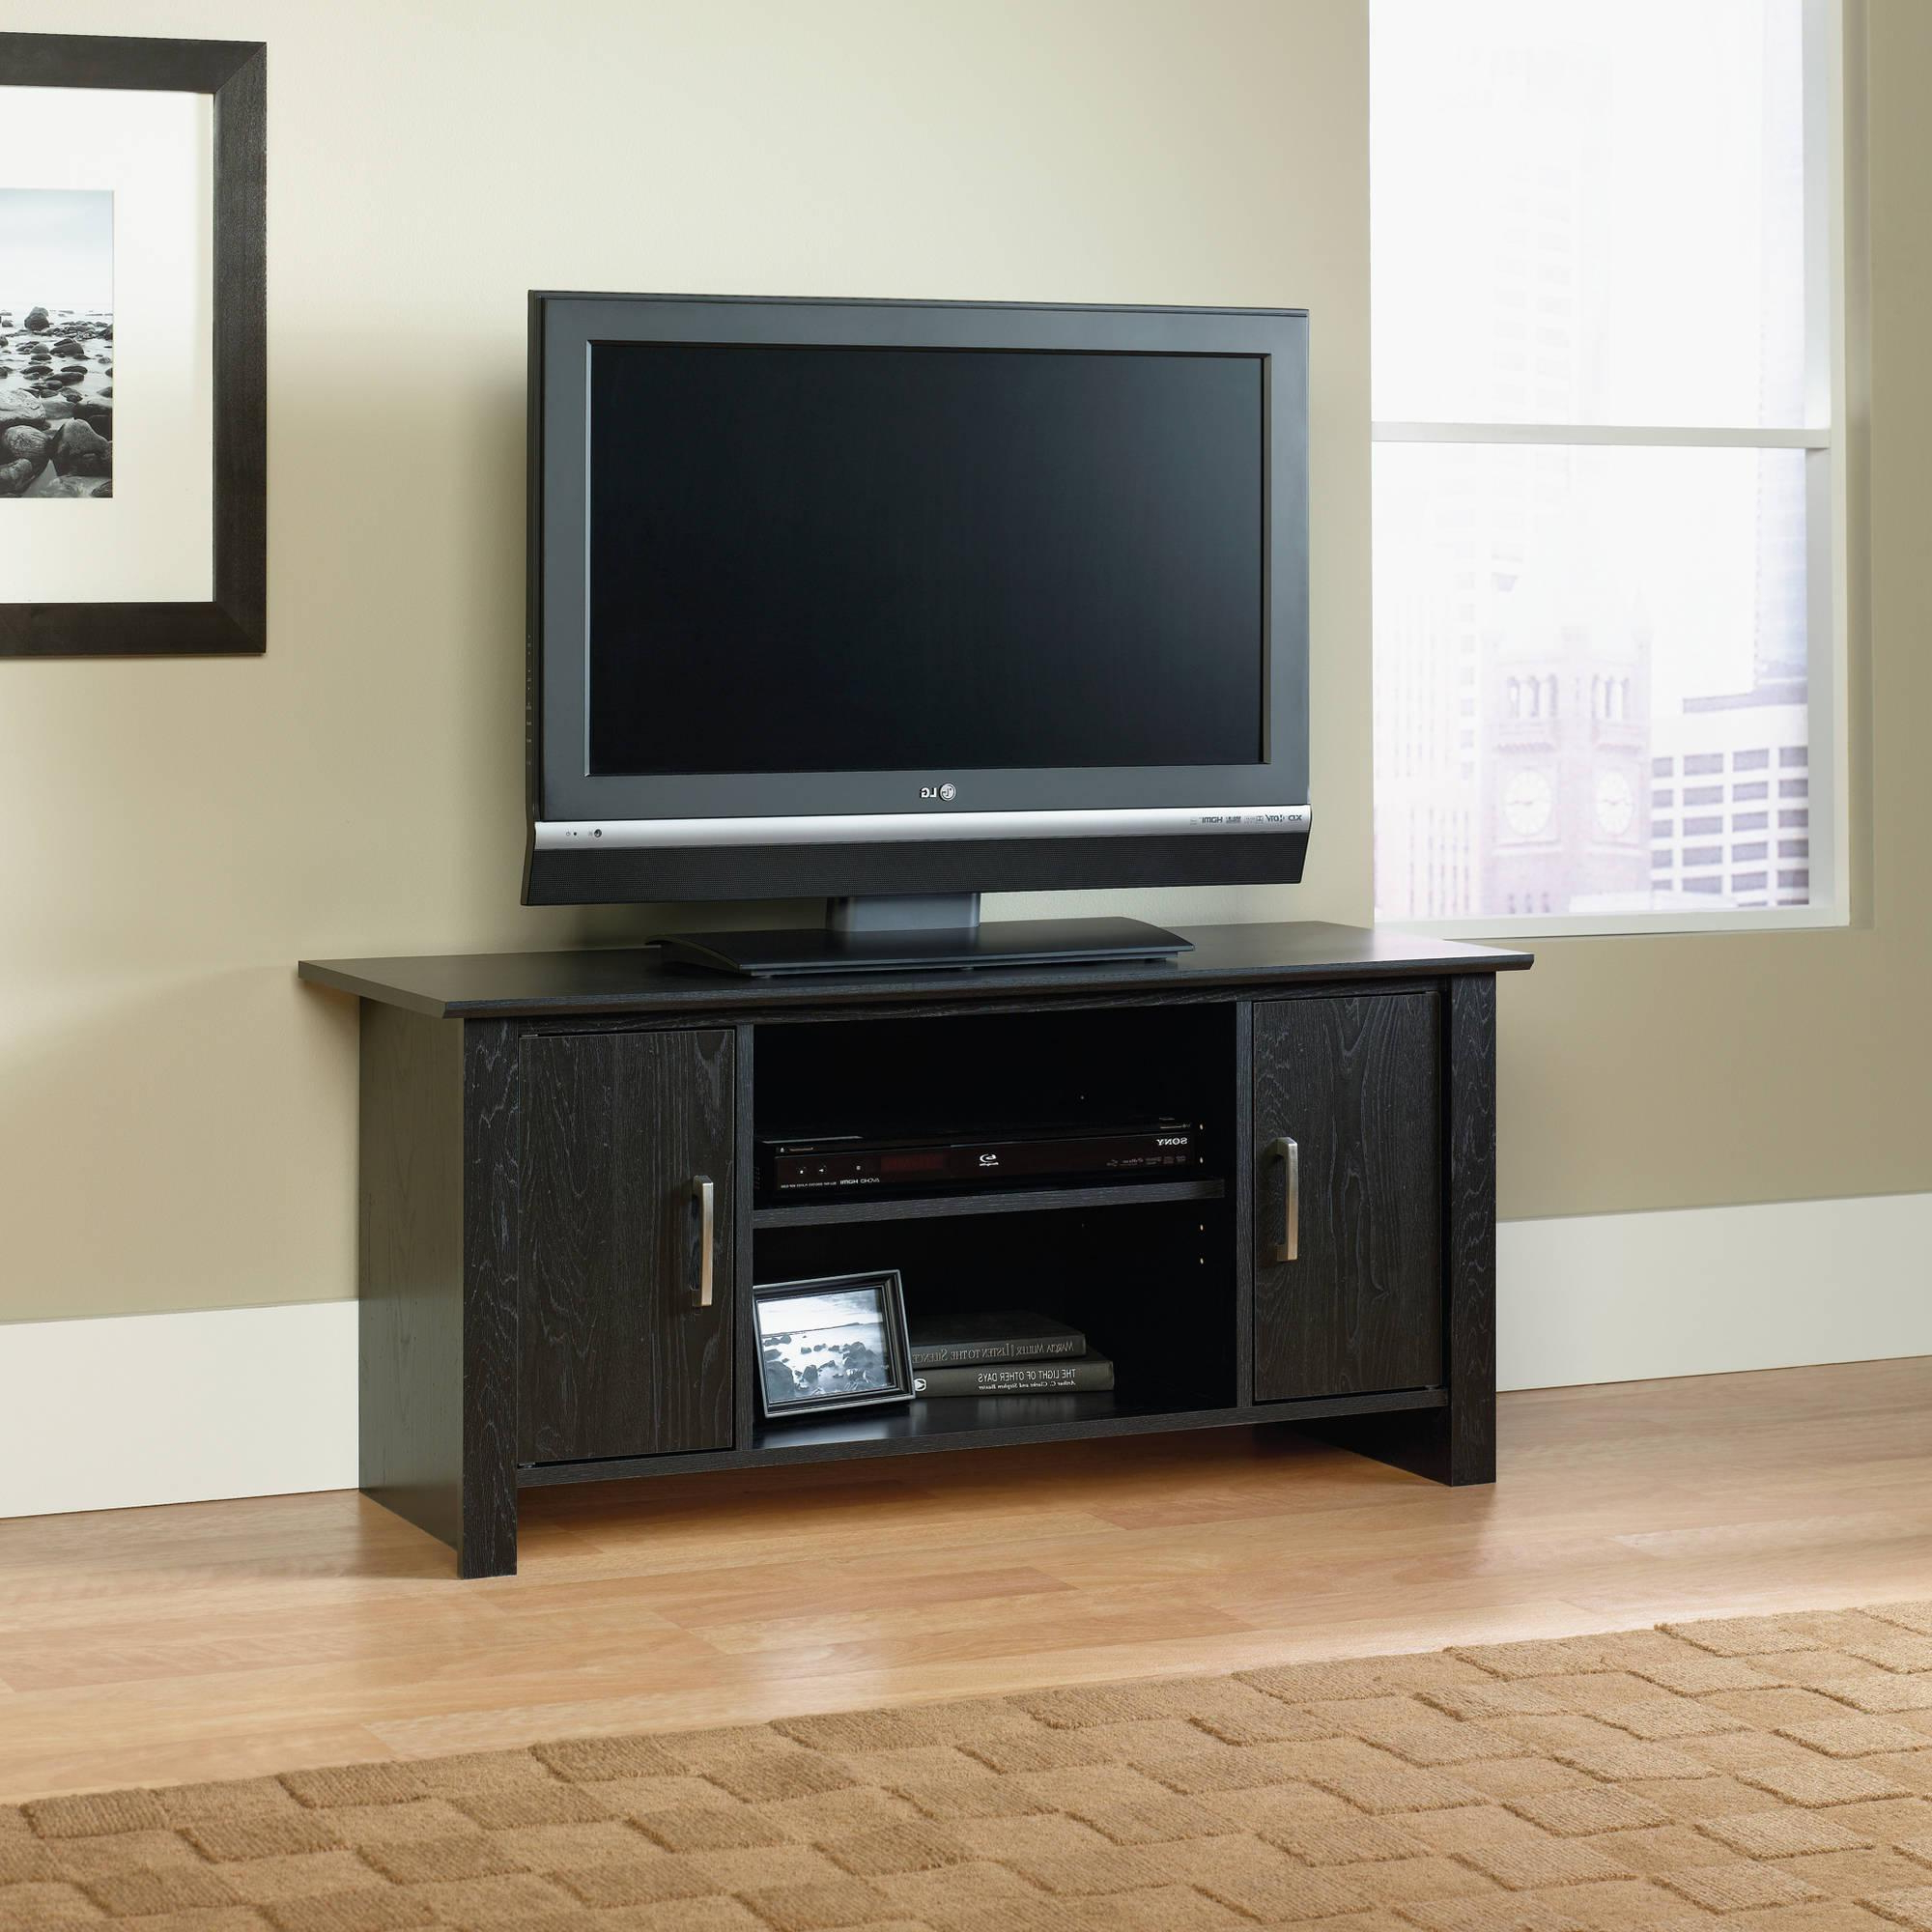 Tv Stand Console Entertainment Media Center Cabinets Storage Flat With Regard To Current Tv Cabinets With Storage (View 2 of 20)